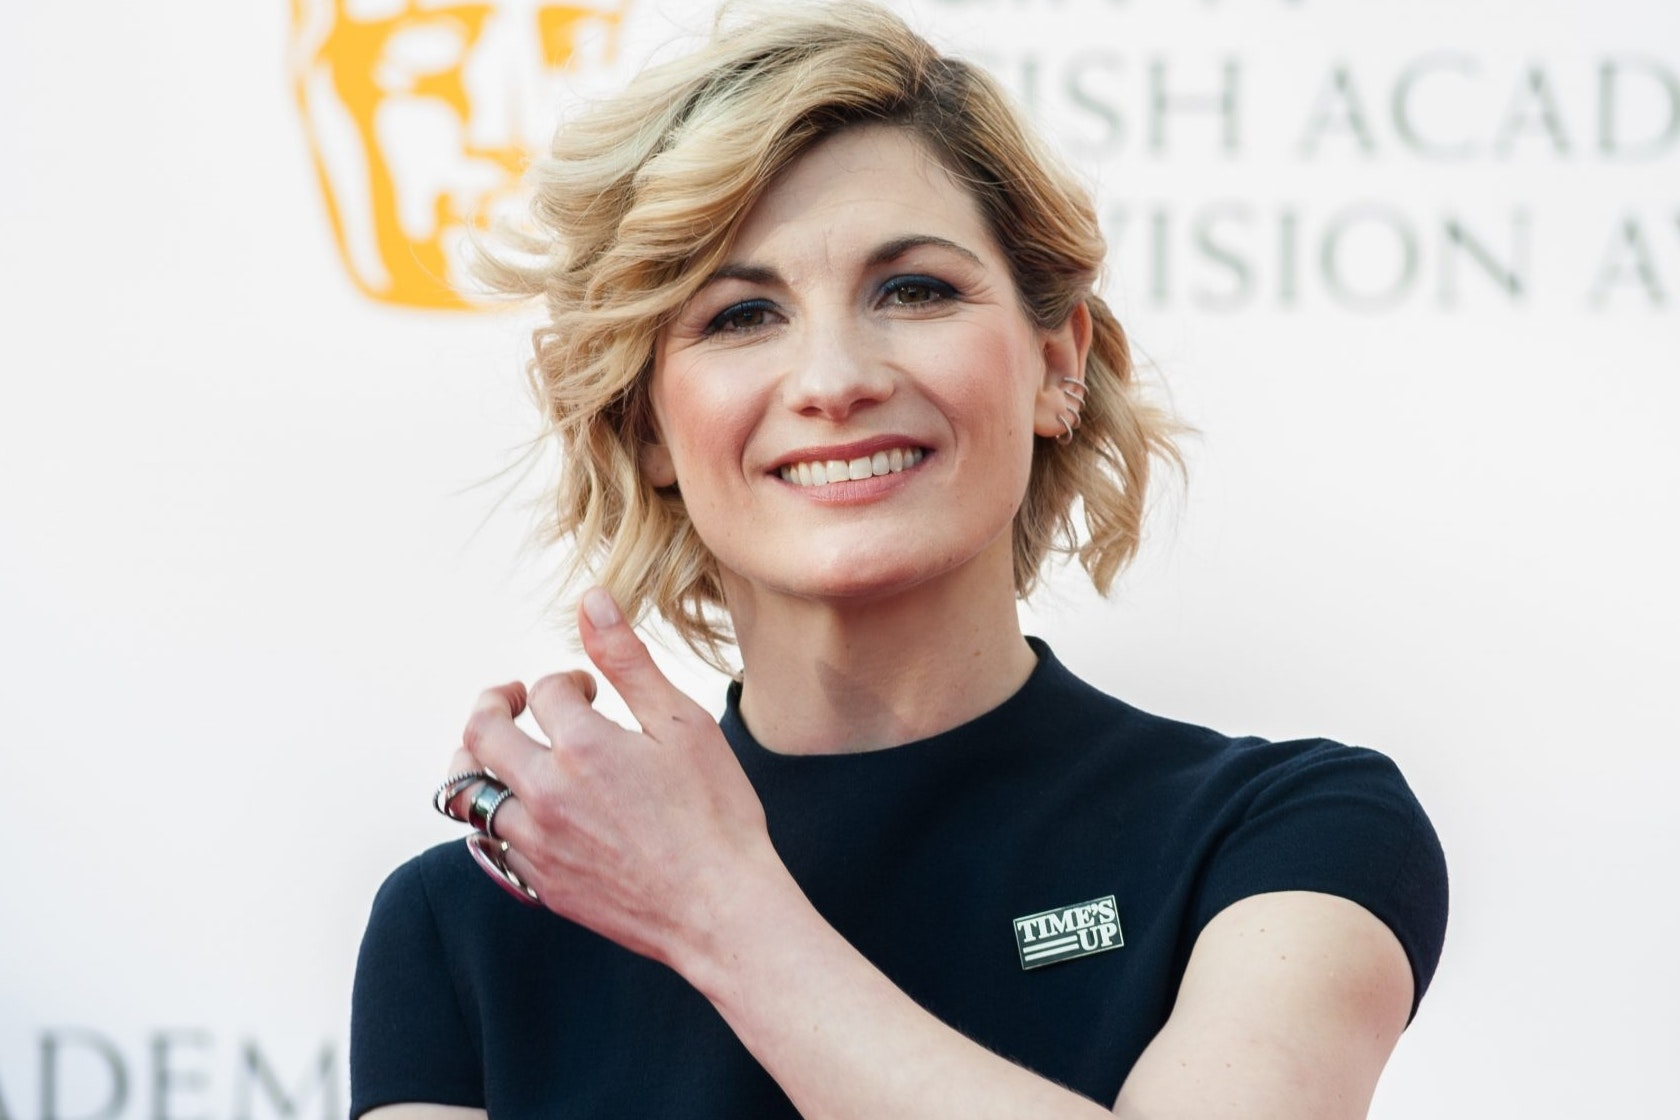 Pictures Jodie Whittaker nudes (94 photos), Sexy, Is a cute, Selfie, braless 2019